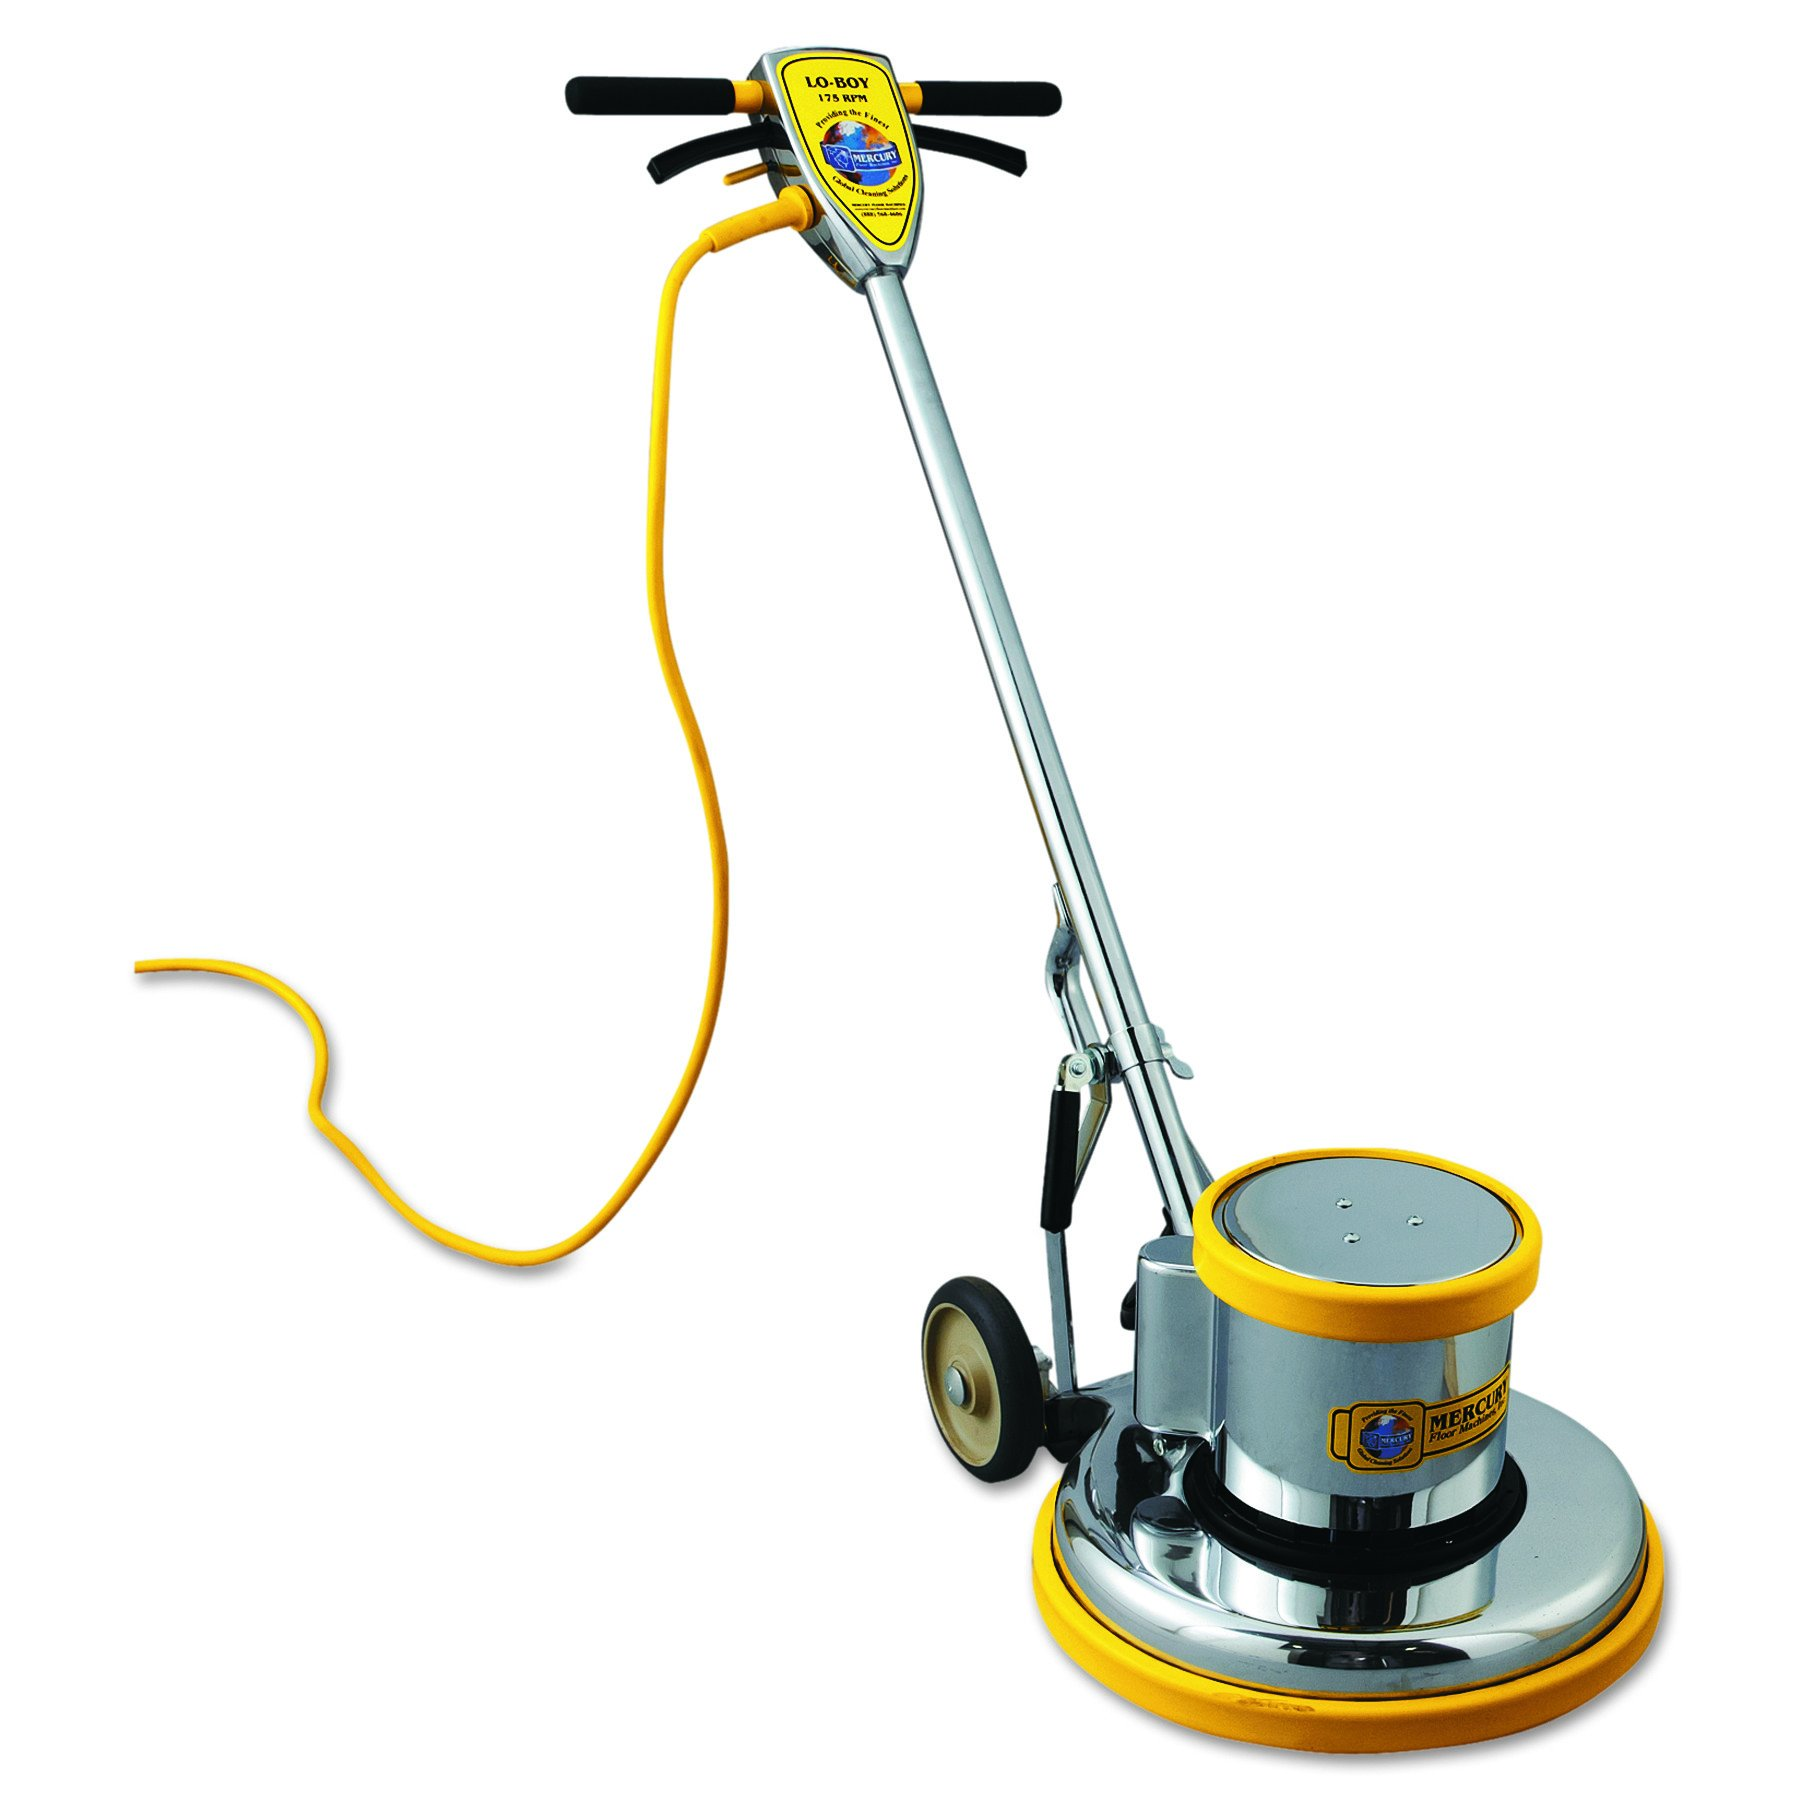 Mercury L-17E Lo-Boy Floor Machine, 17'' Apron, 1.5 HP Motor, 175 RPM Brush Speed by Mercury